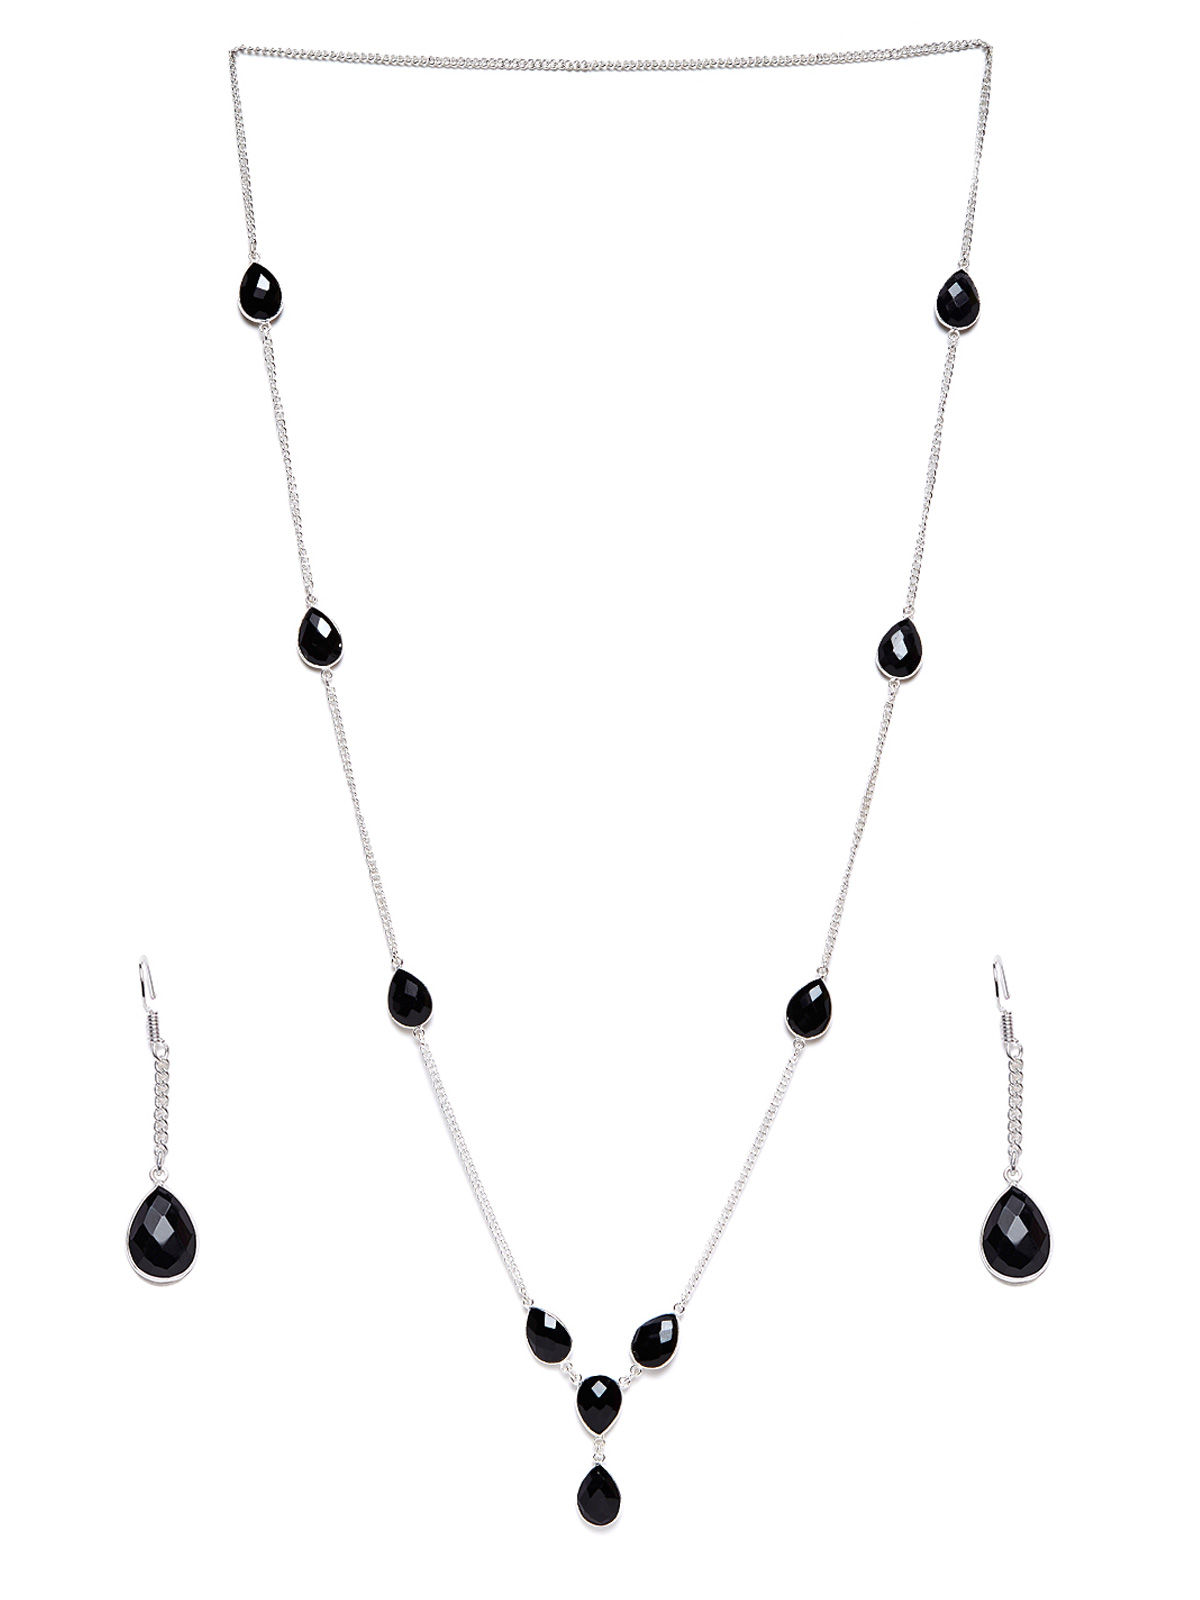 Imli Street black silver tone brass neckpiece and earrings set